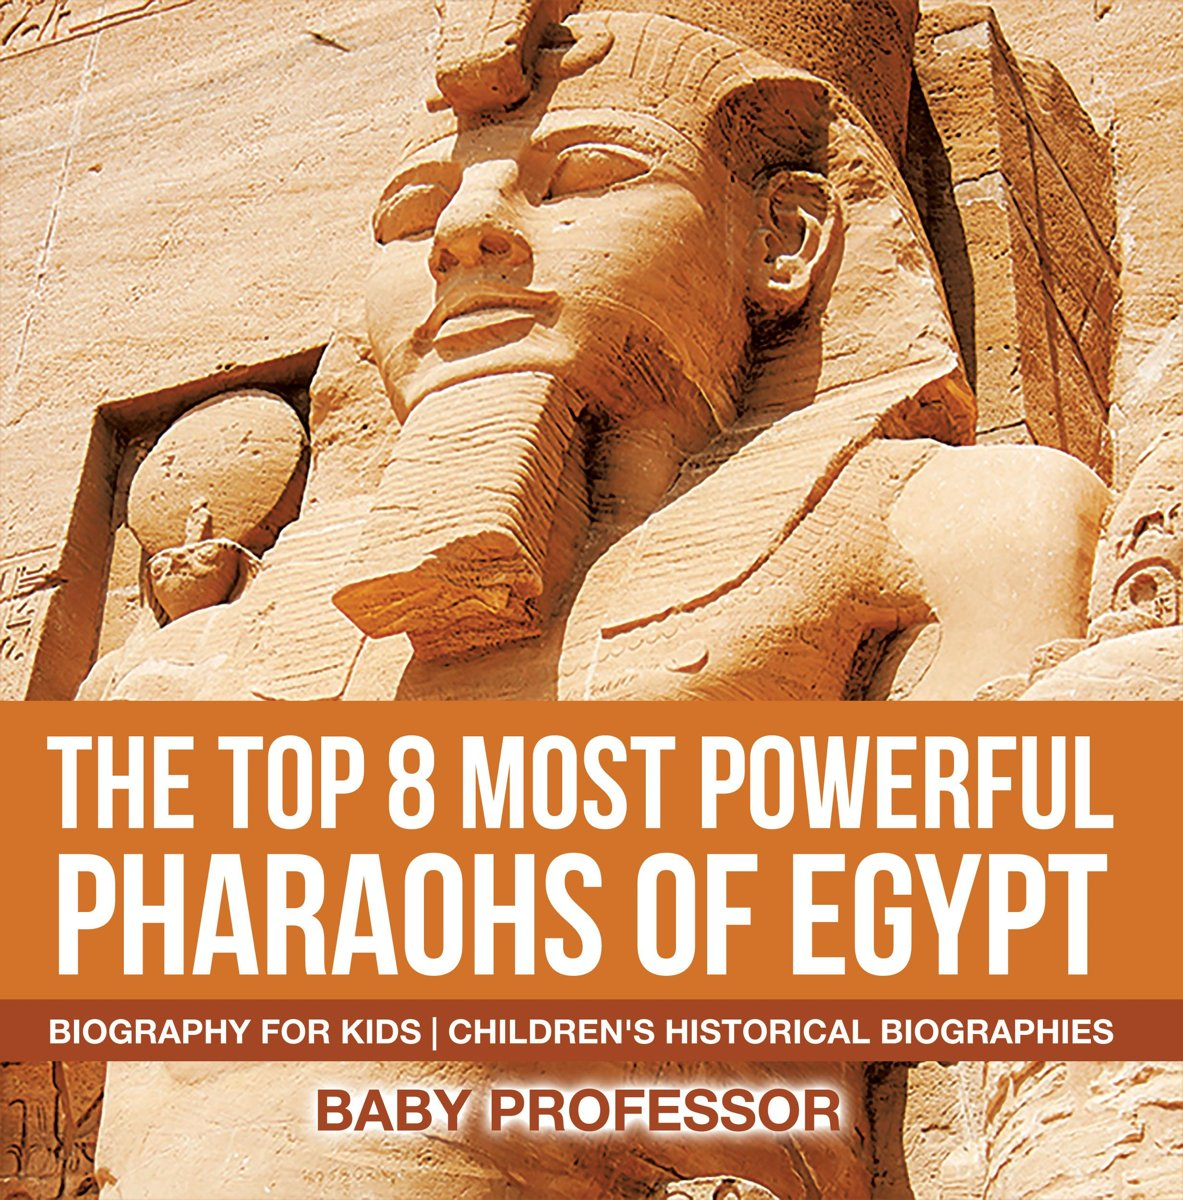 The Top 8 Most Powerful Pharaohs of Egypt - Biography for Kids   Children's Historical Biographies